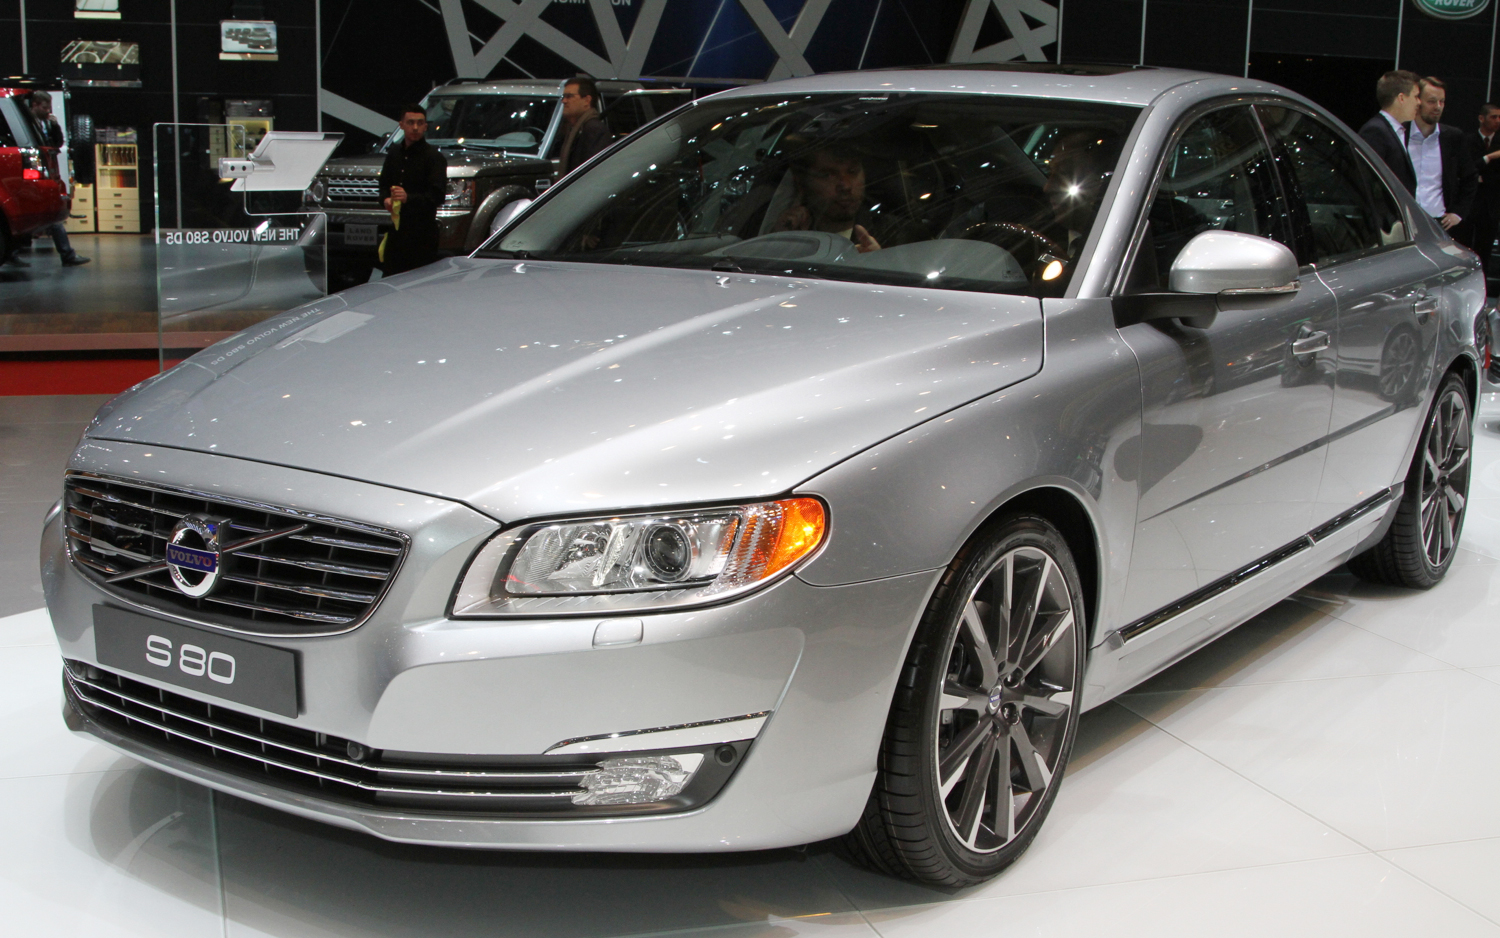 2014 volvo xc60 s60 hit the geneva show floor new cars reviews. Black Bedroom Furniture Sets. Home Design Ideas